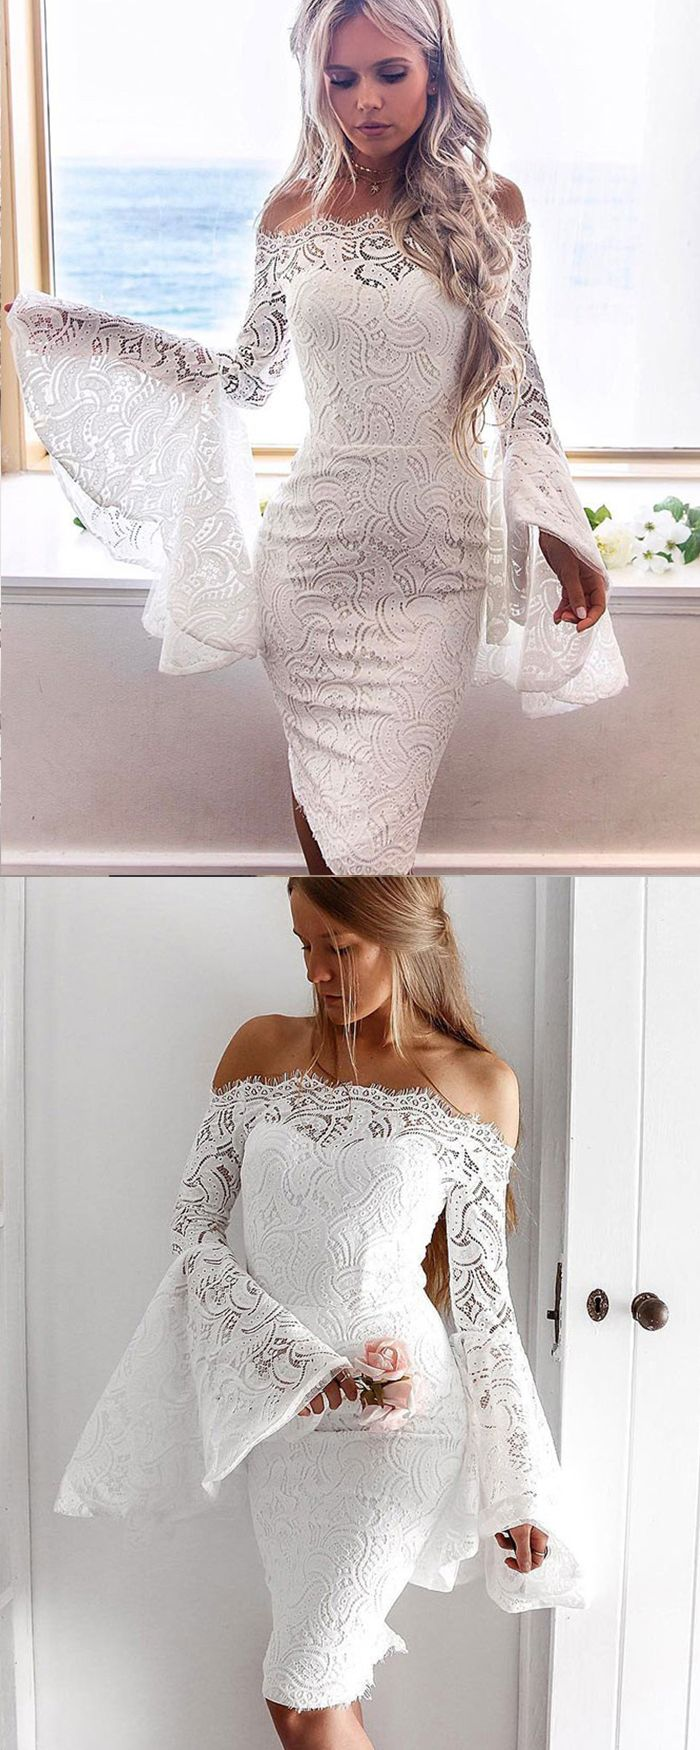 Off the shoulder white lace knee length homecoming dress with bell